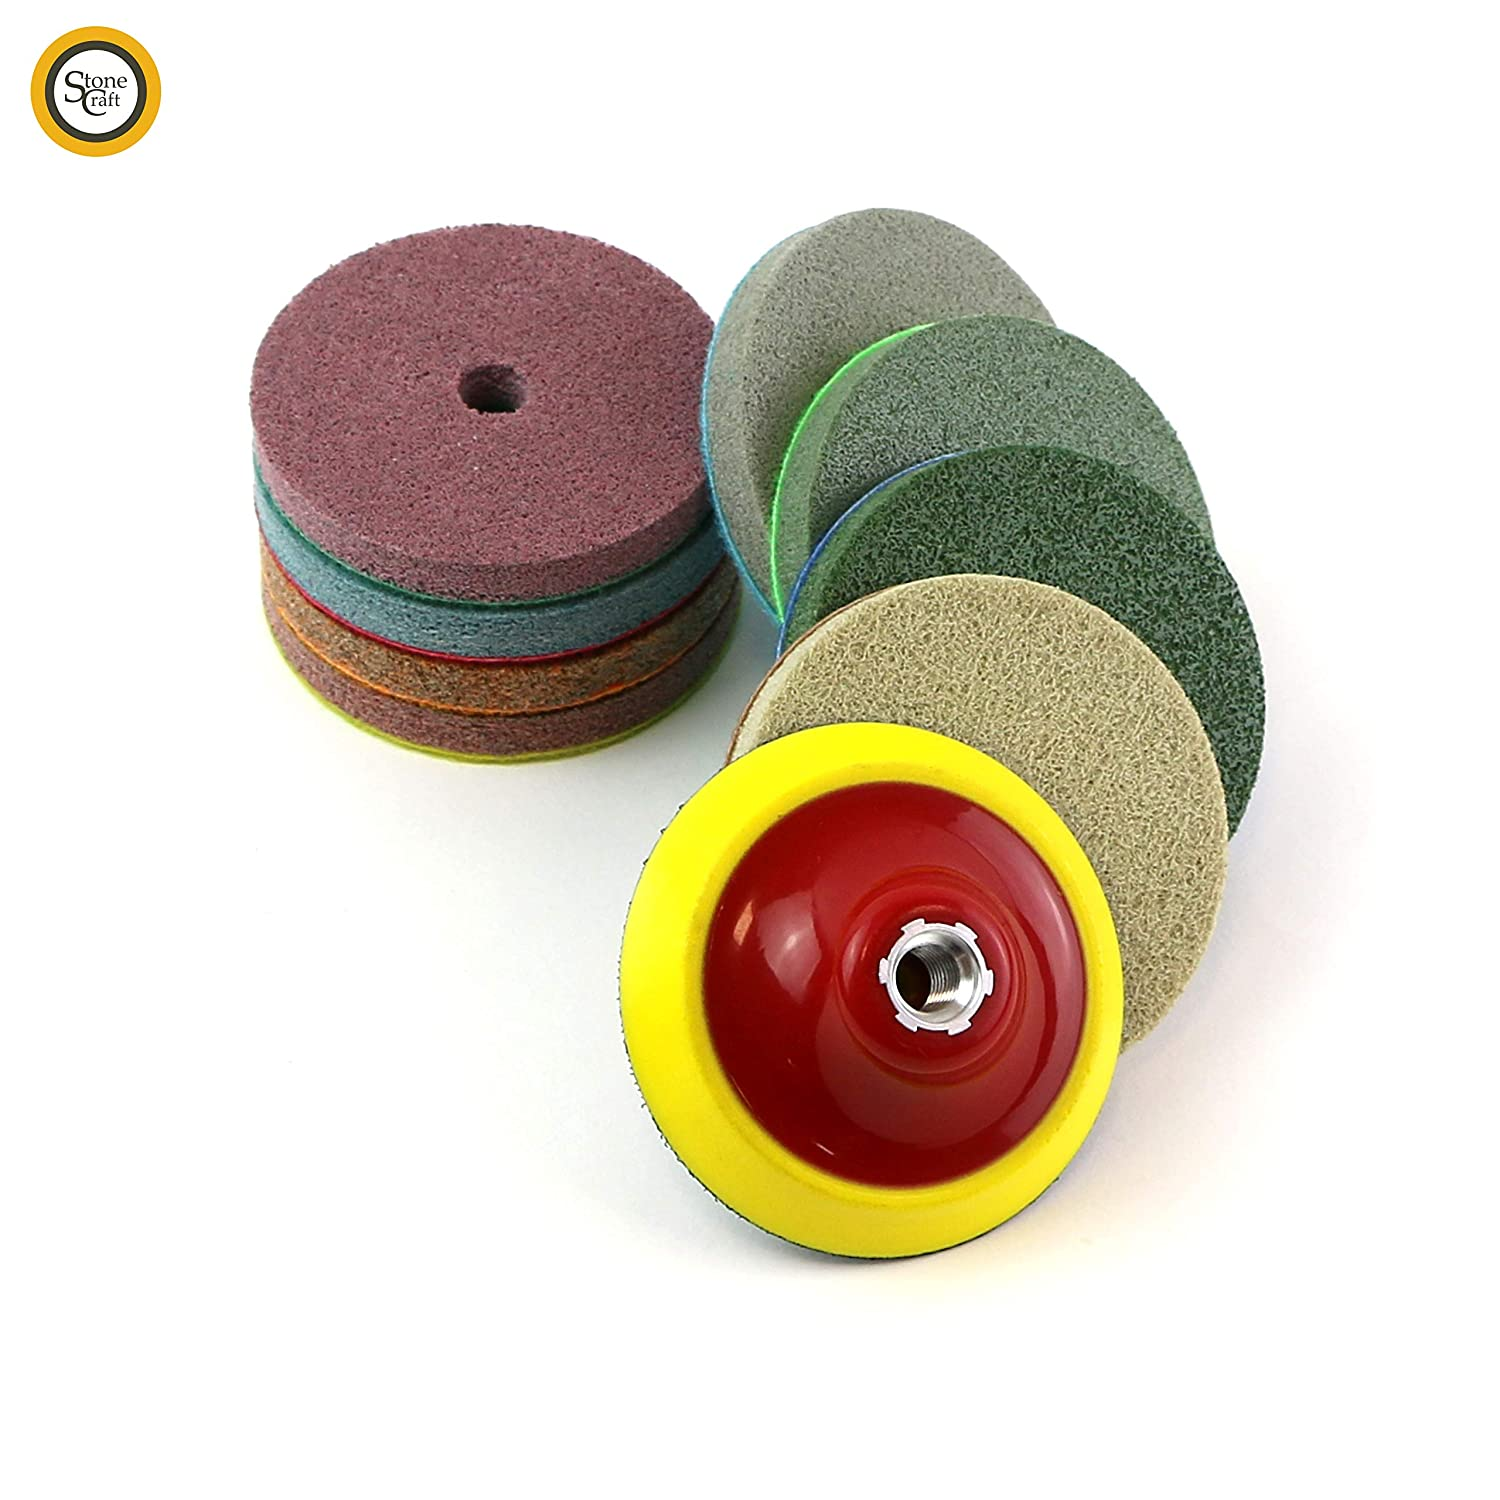 Stonecraft Diamond Polishing Pads Set Wet//Dry 9 pcs 100mm 4 inch Backing Pad 5//8 for Marble